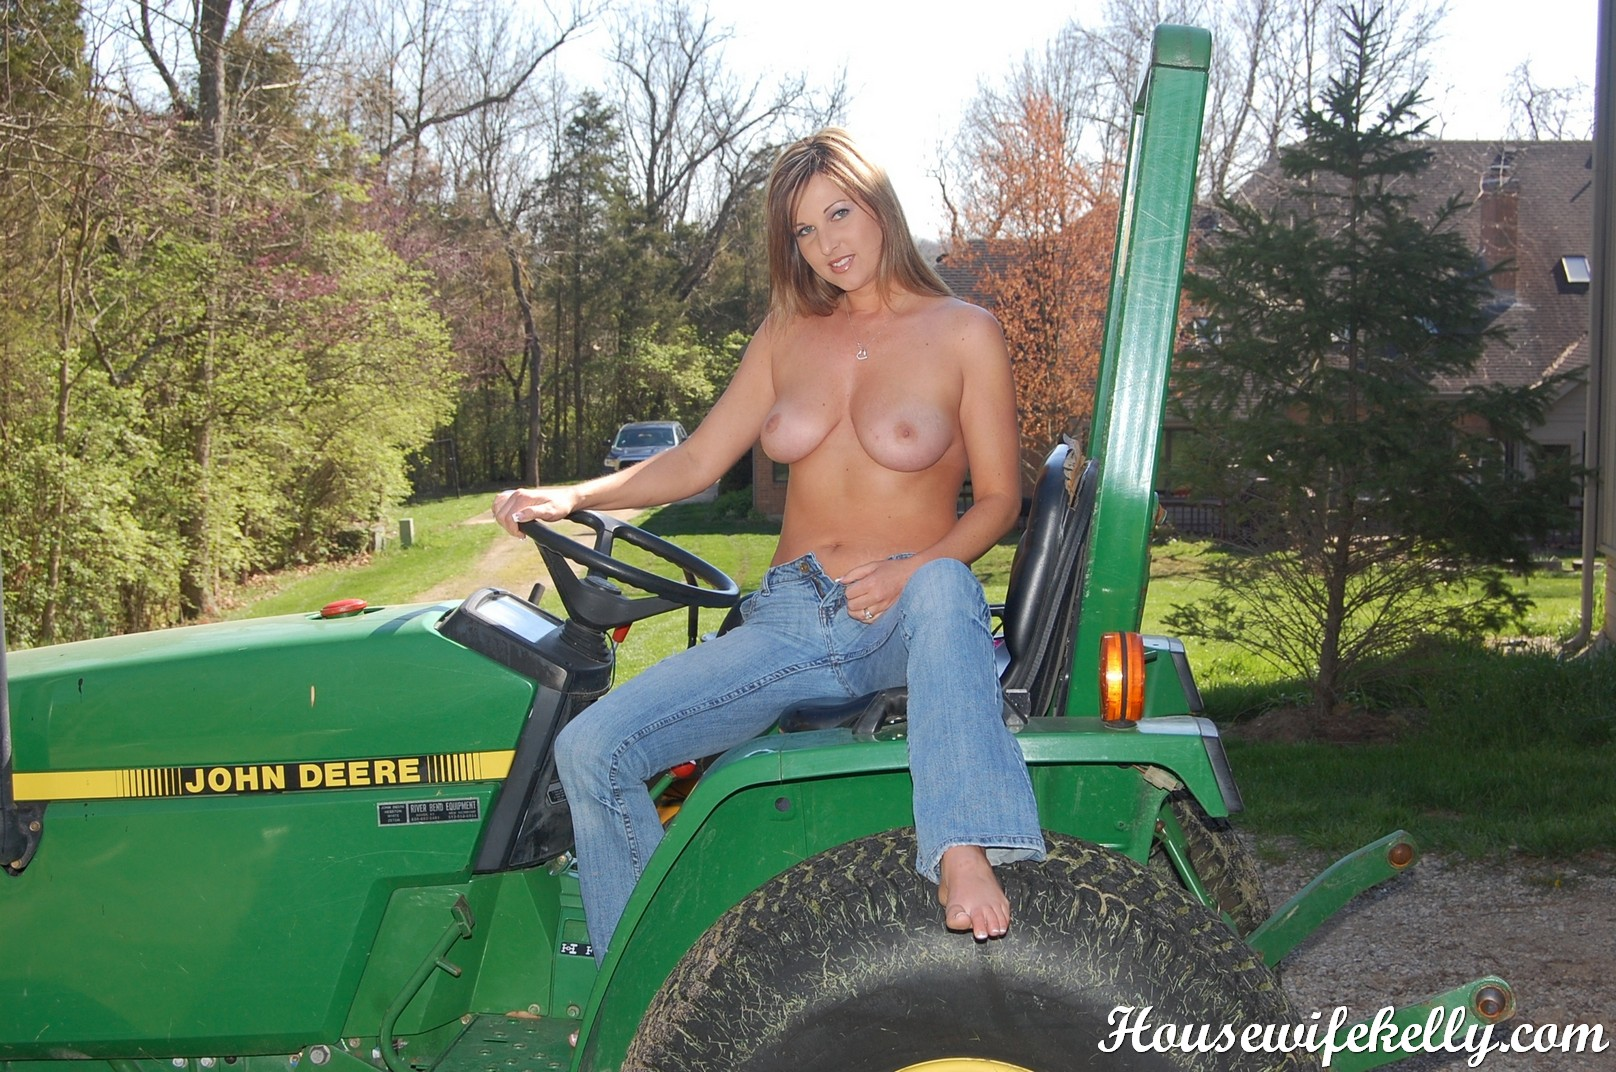 country chick with shaved pussy goes topless then pulls off her